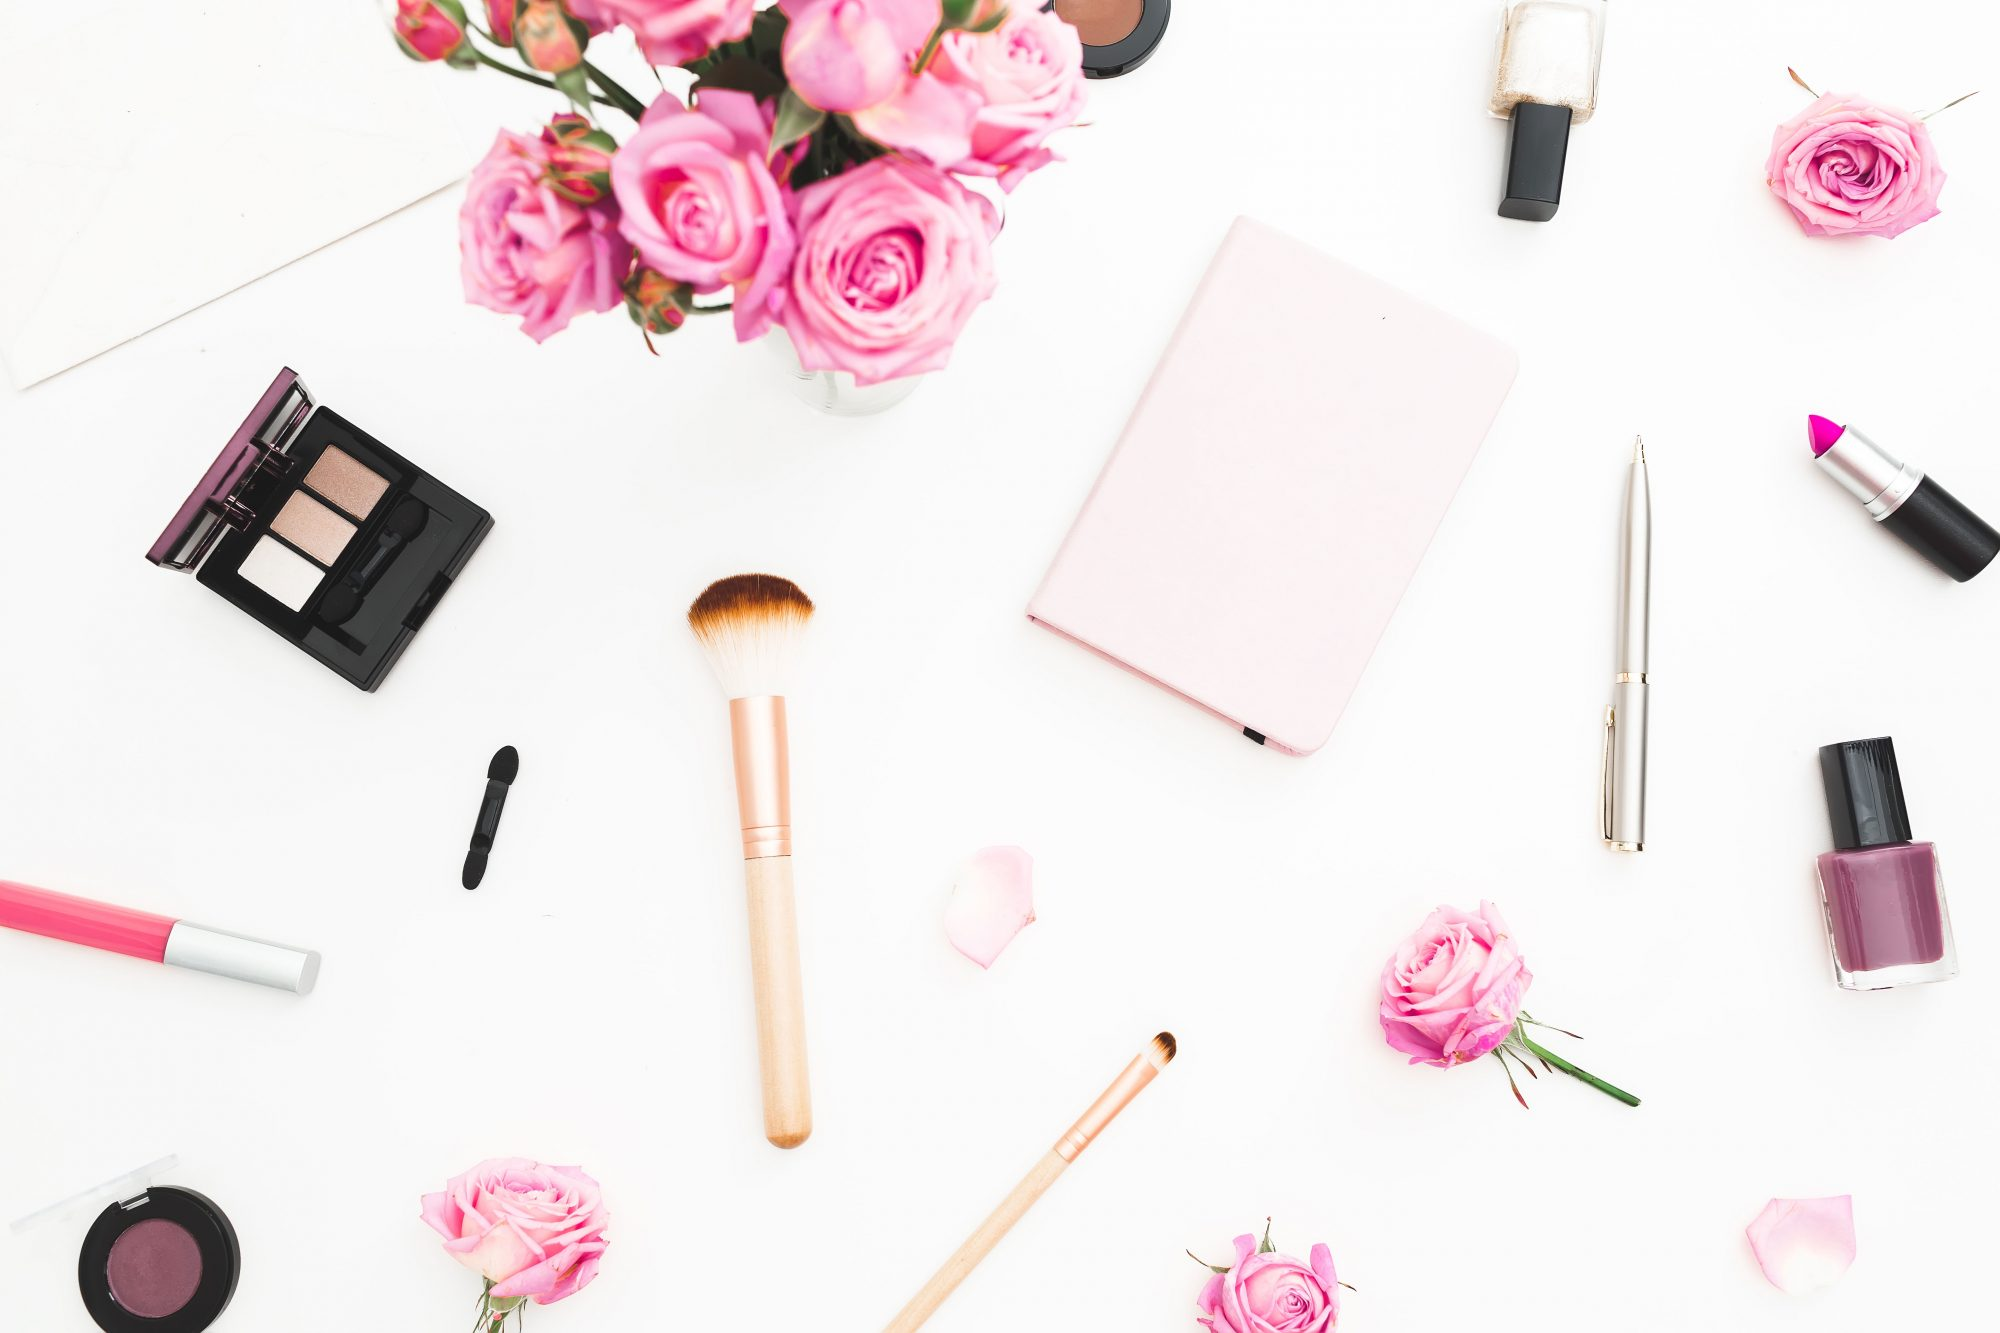 Makeup and Cosmetics on Table